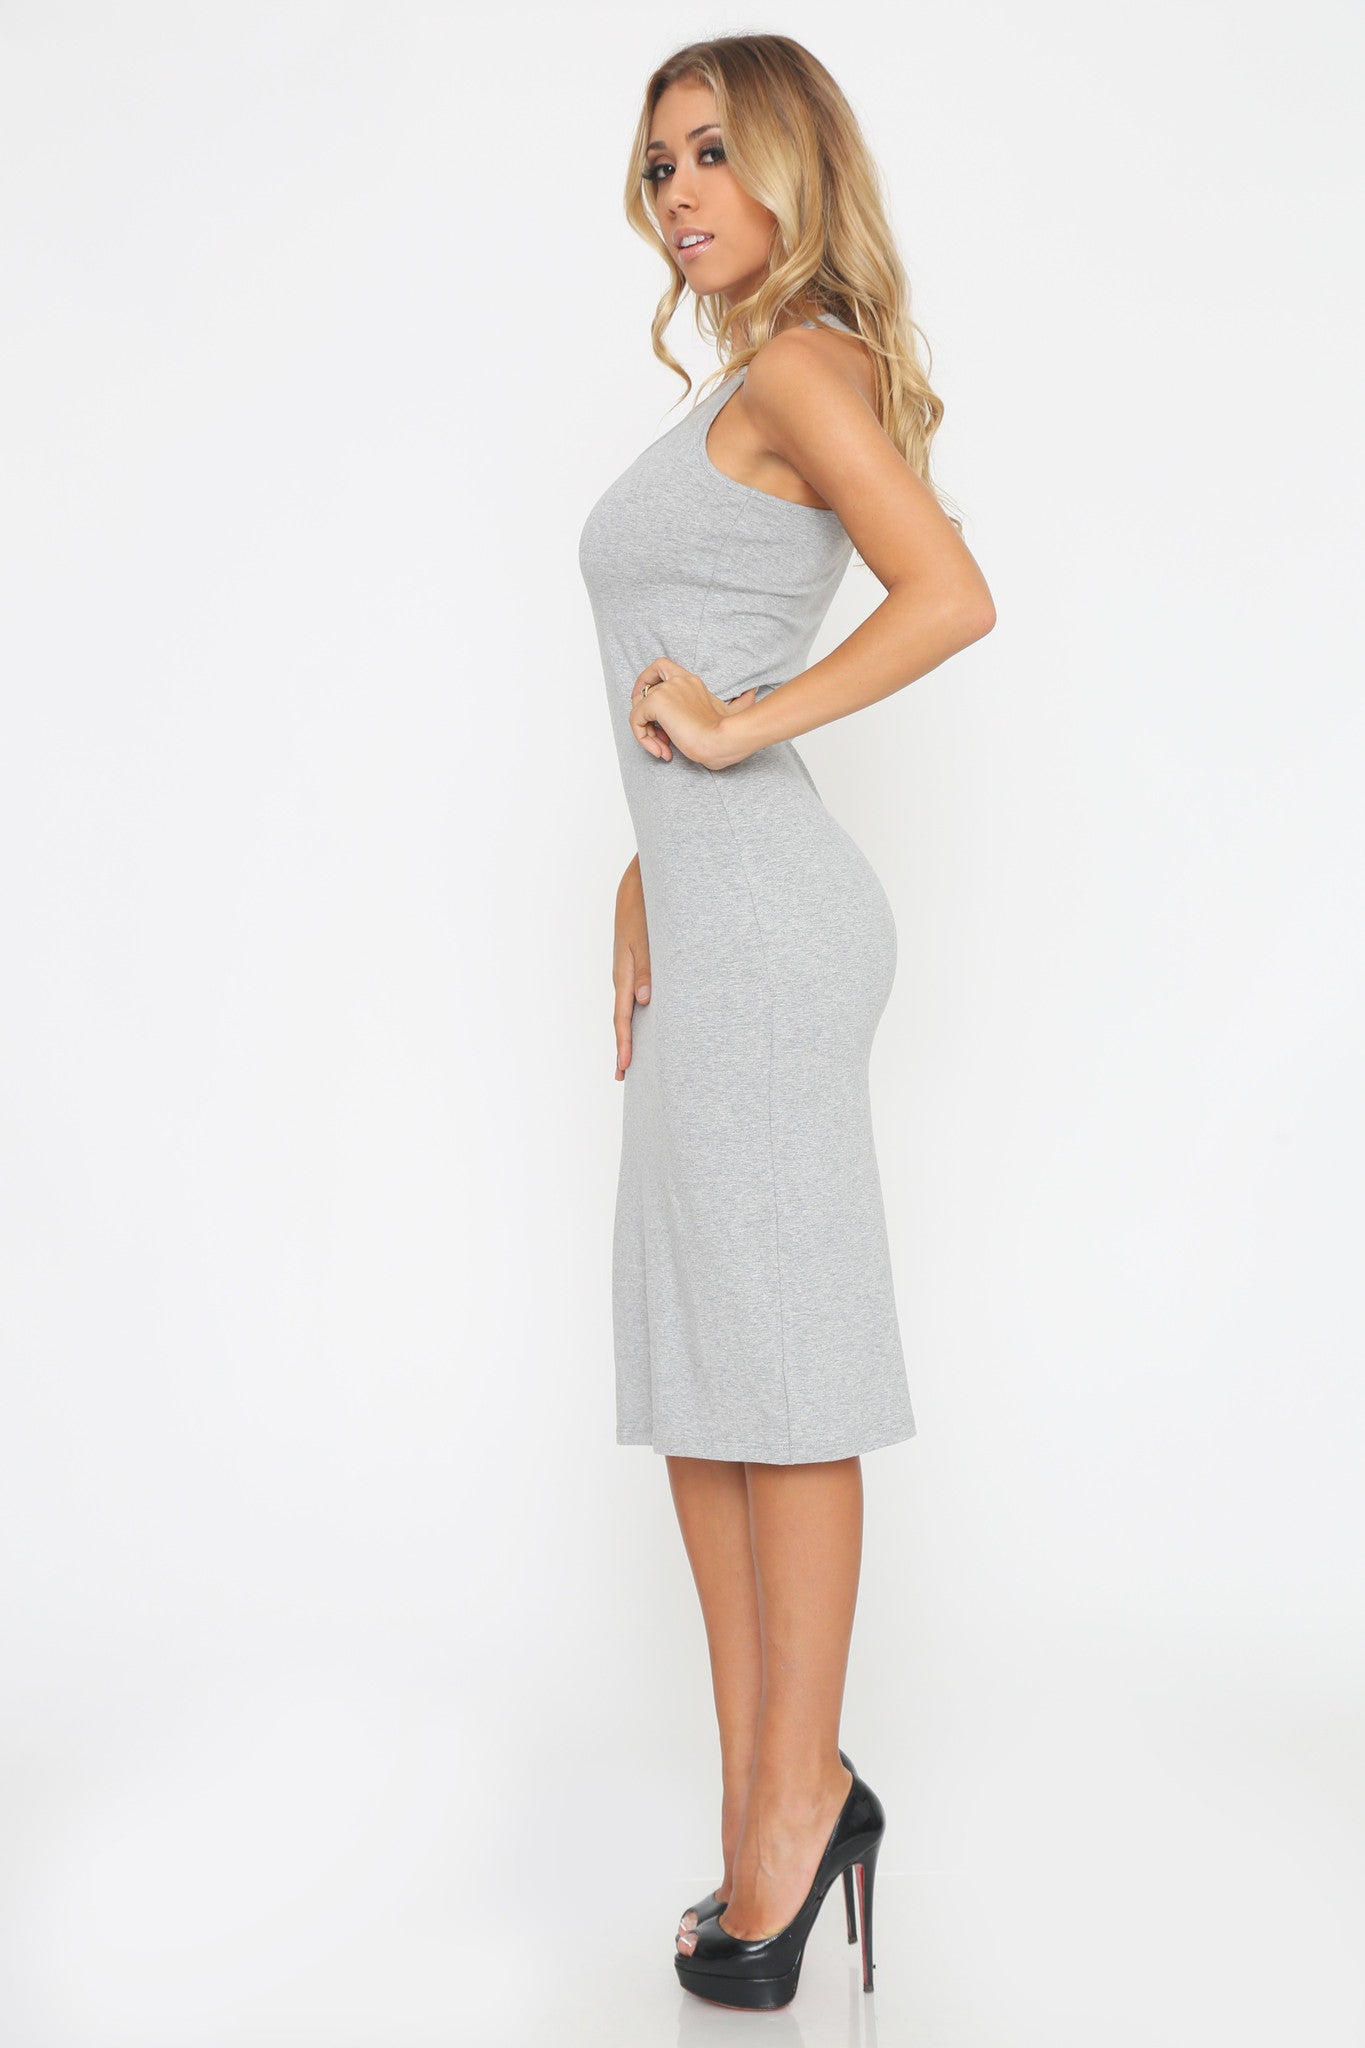 SHERIDAN DRESS - Glam Envy - 2